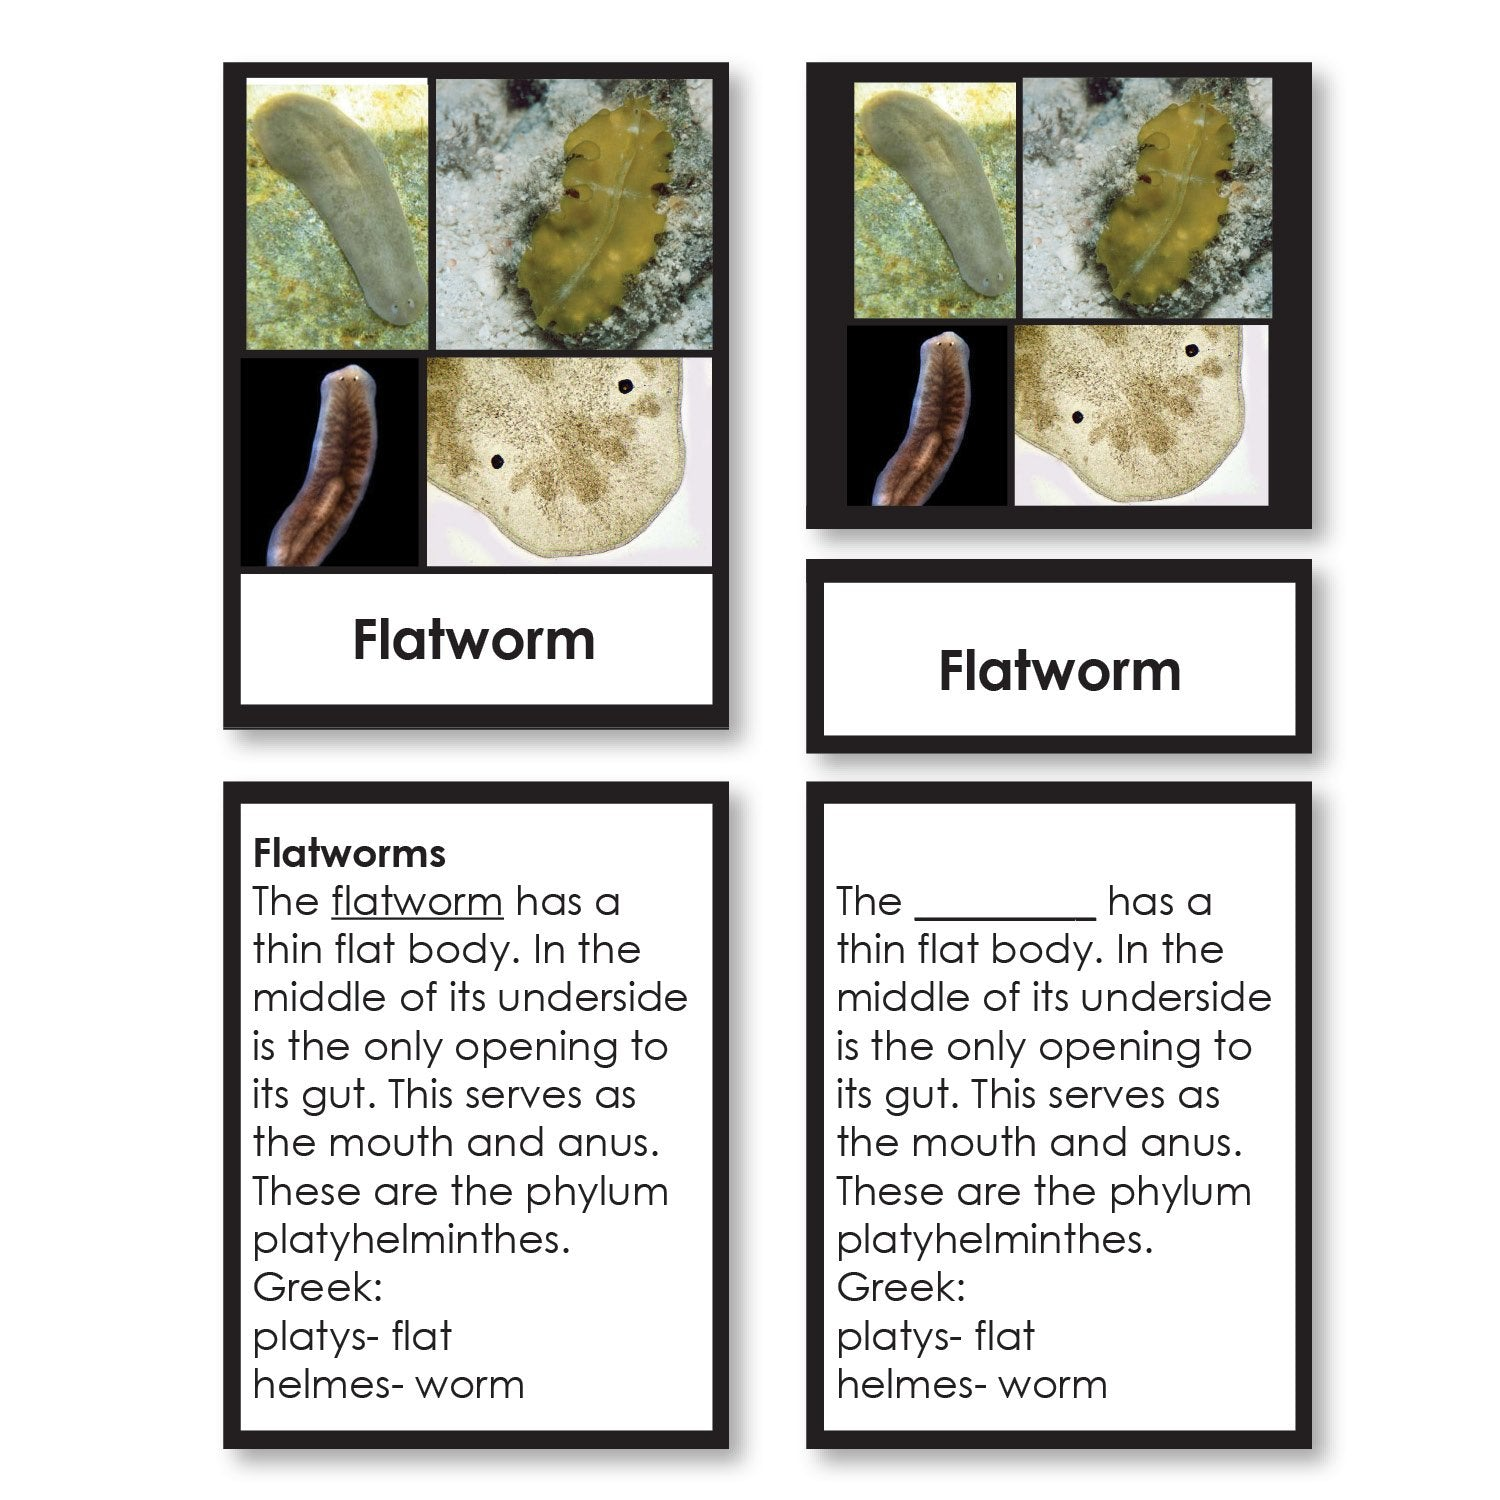 Zoology-Animal Classification/ Identification - Animal Kingdom Classification 3-Part Cards With Definitions